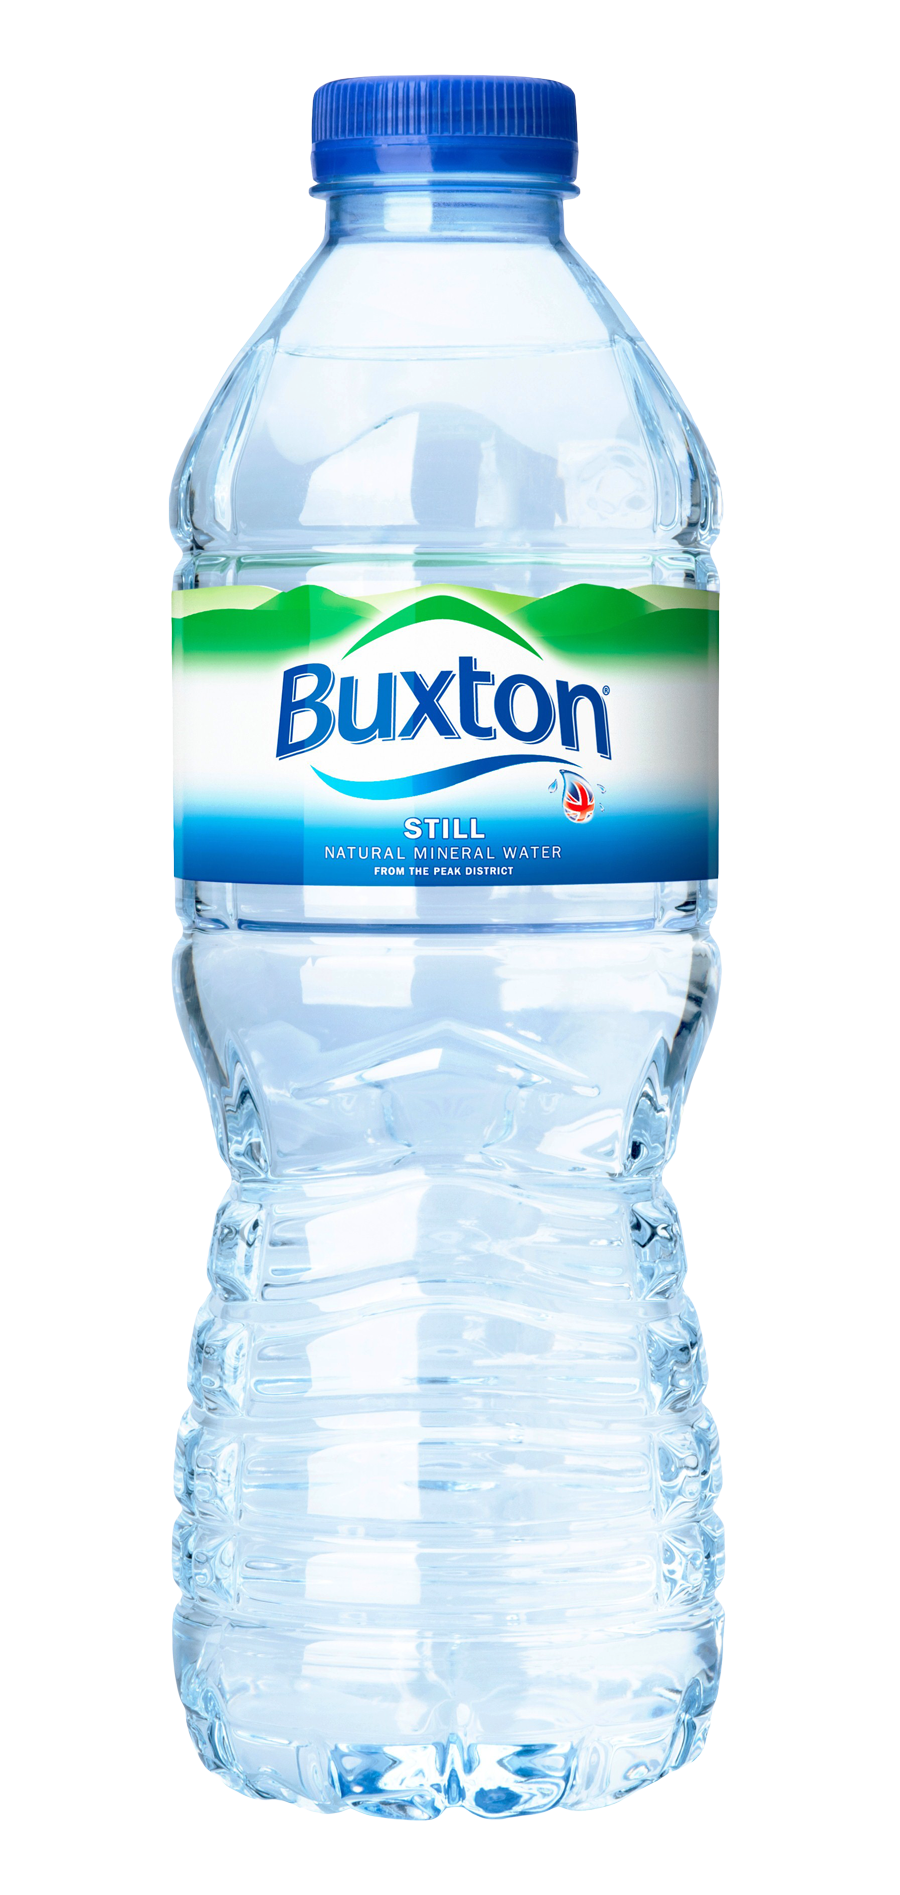 buxton brand plastic water bottle PNG image